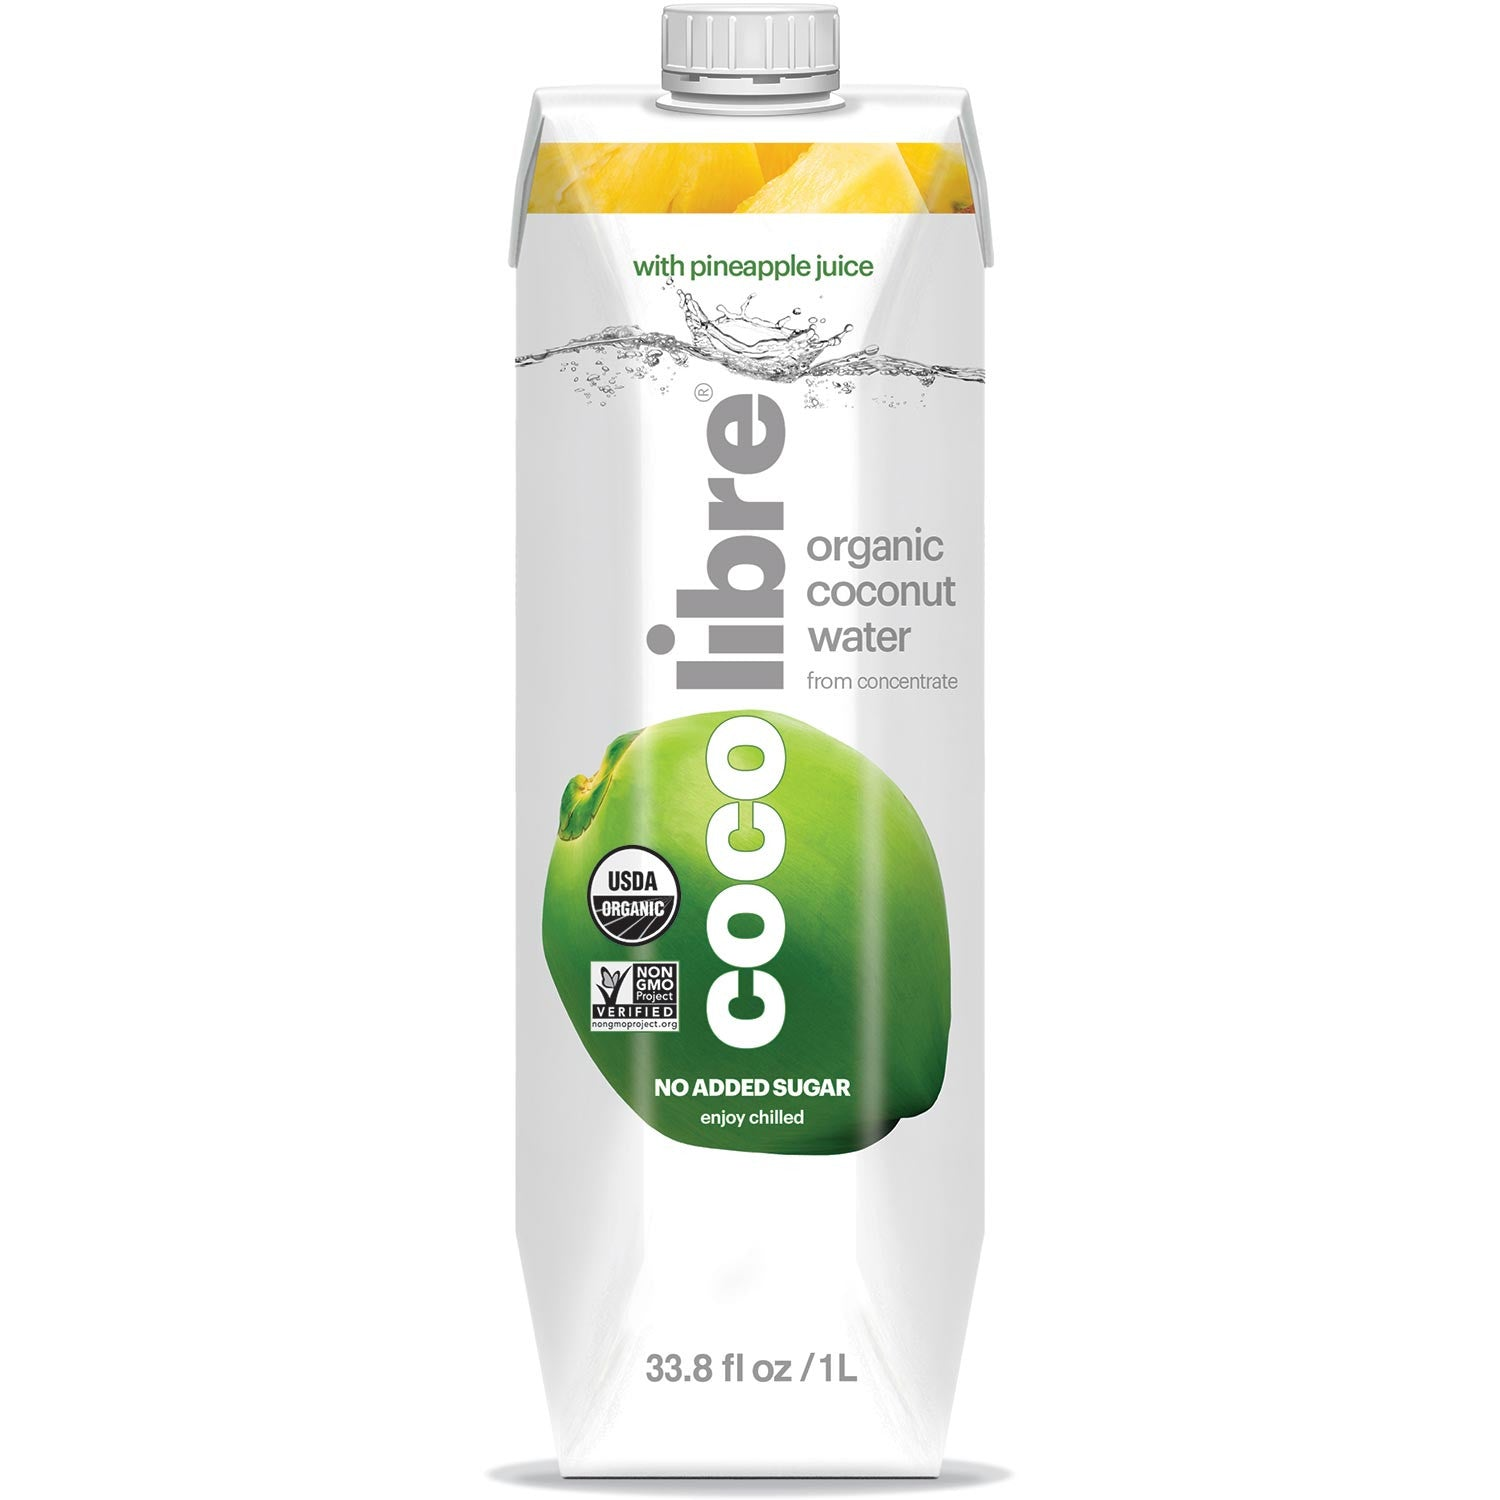 Coco Libre Pure Organic Coconut Water with Pineapple (>95% Organic), 1 L.